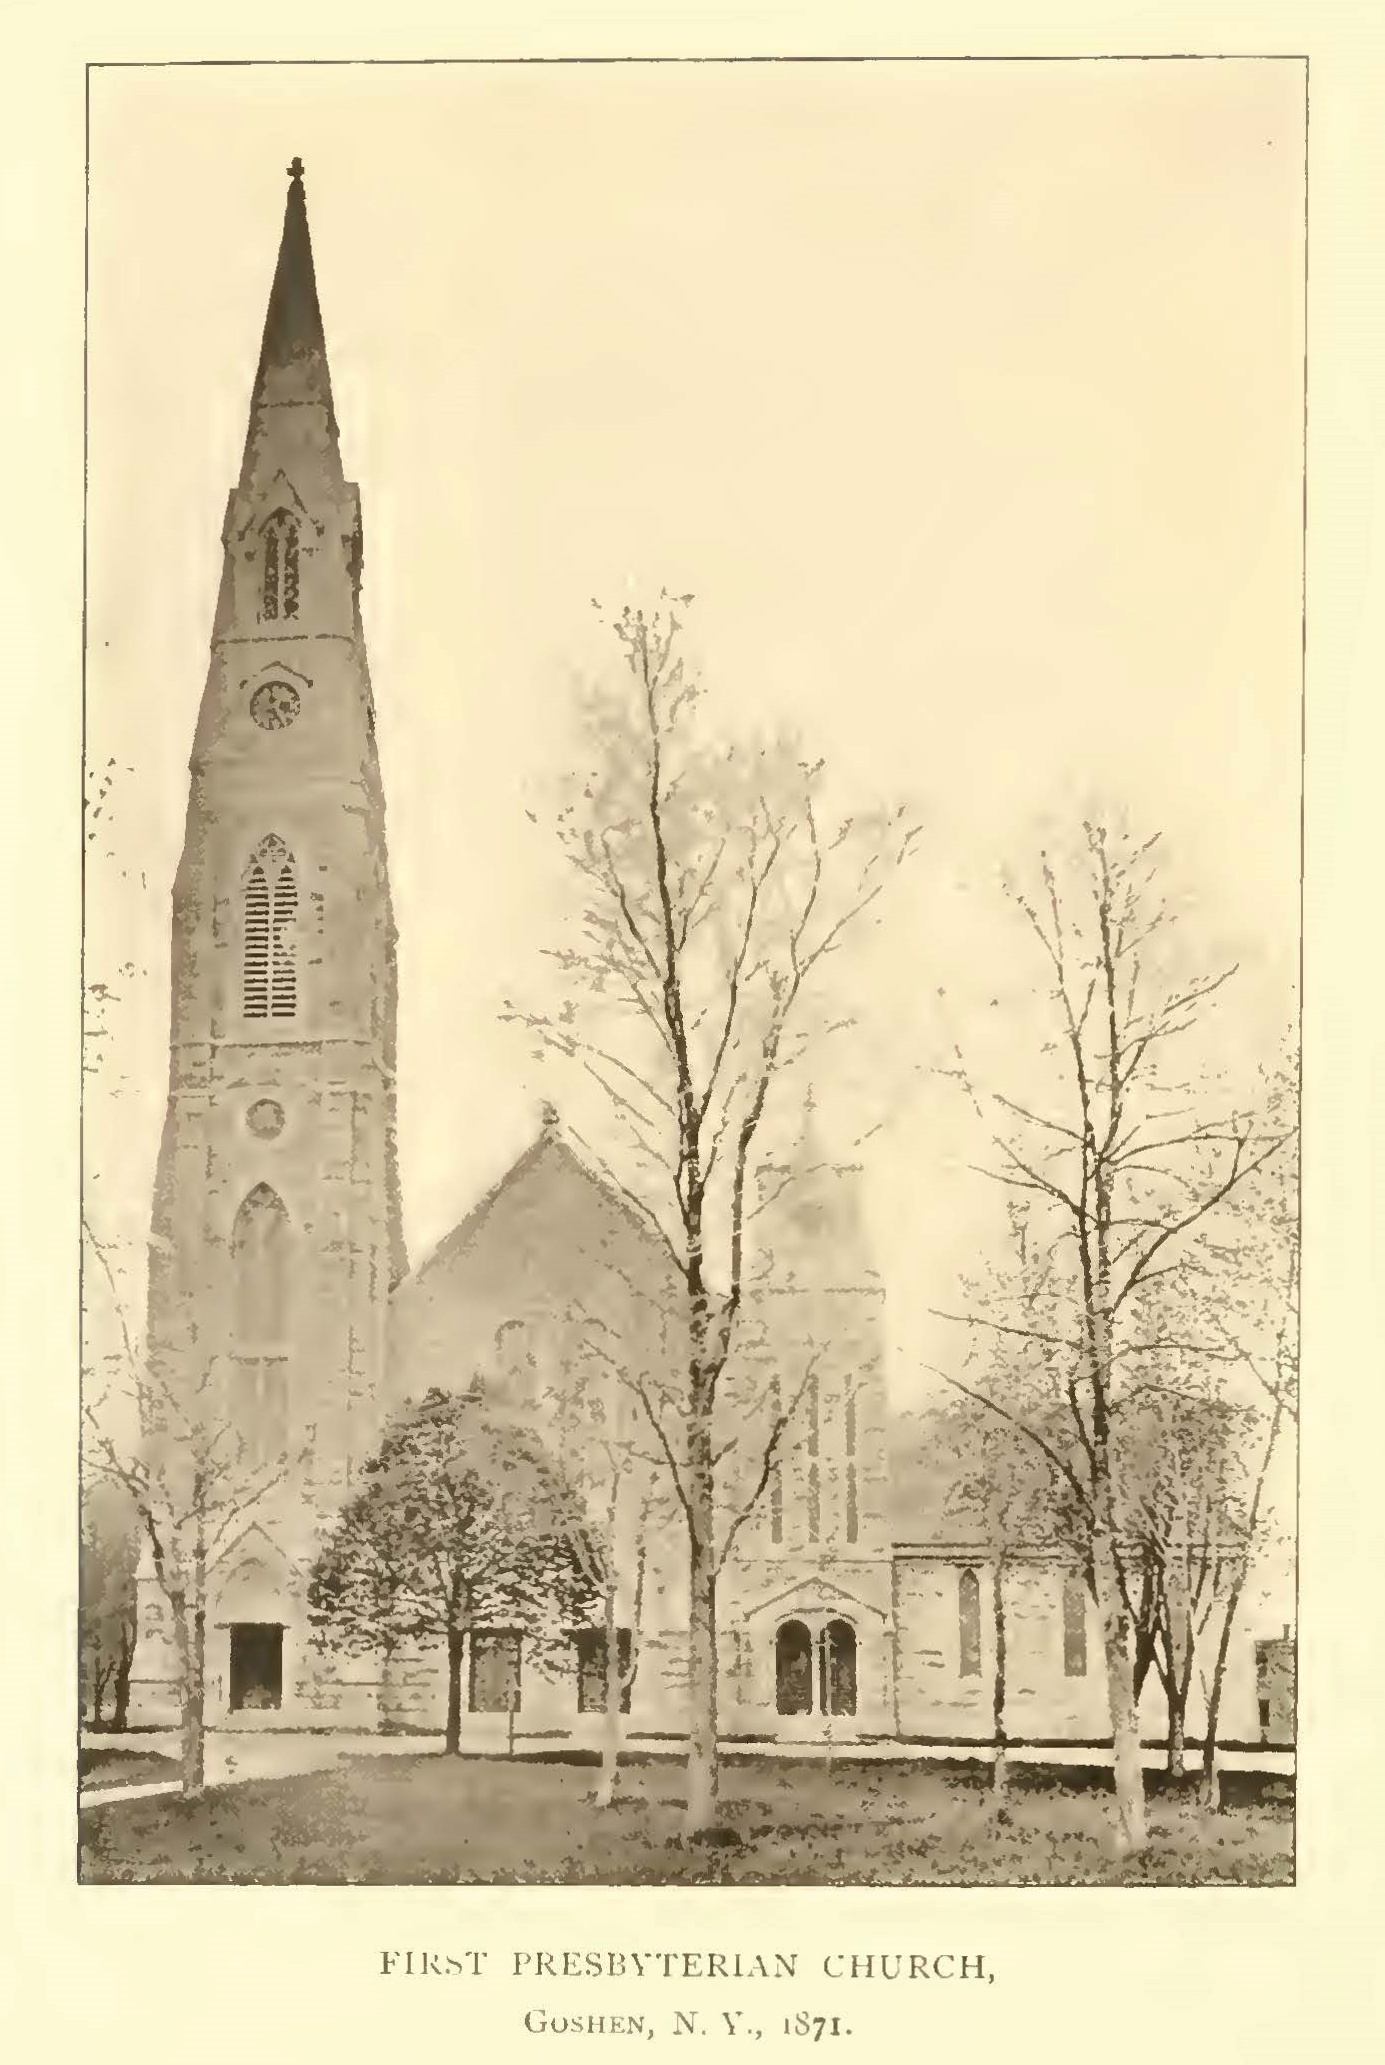 Nathan Ker served as pastor of the First Presbyterian Church of Goshen, New York for 38 years.